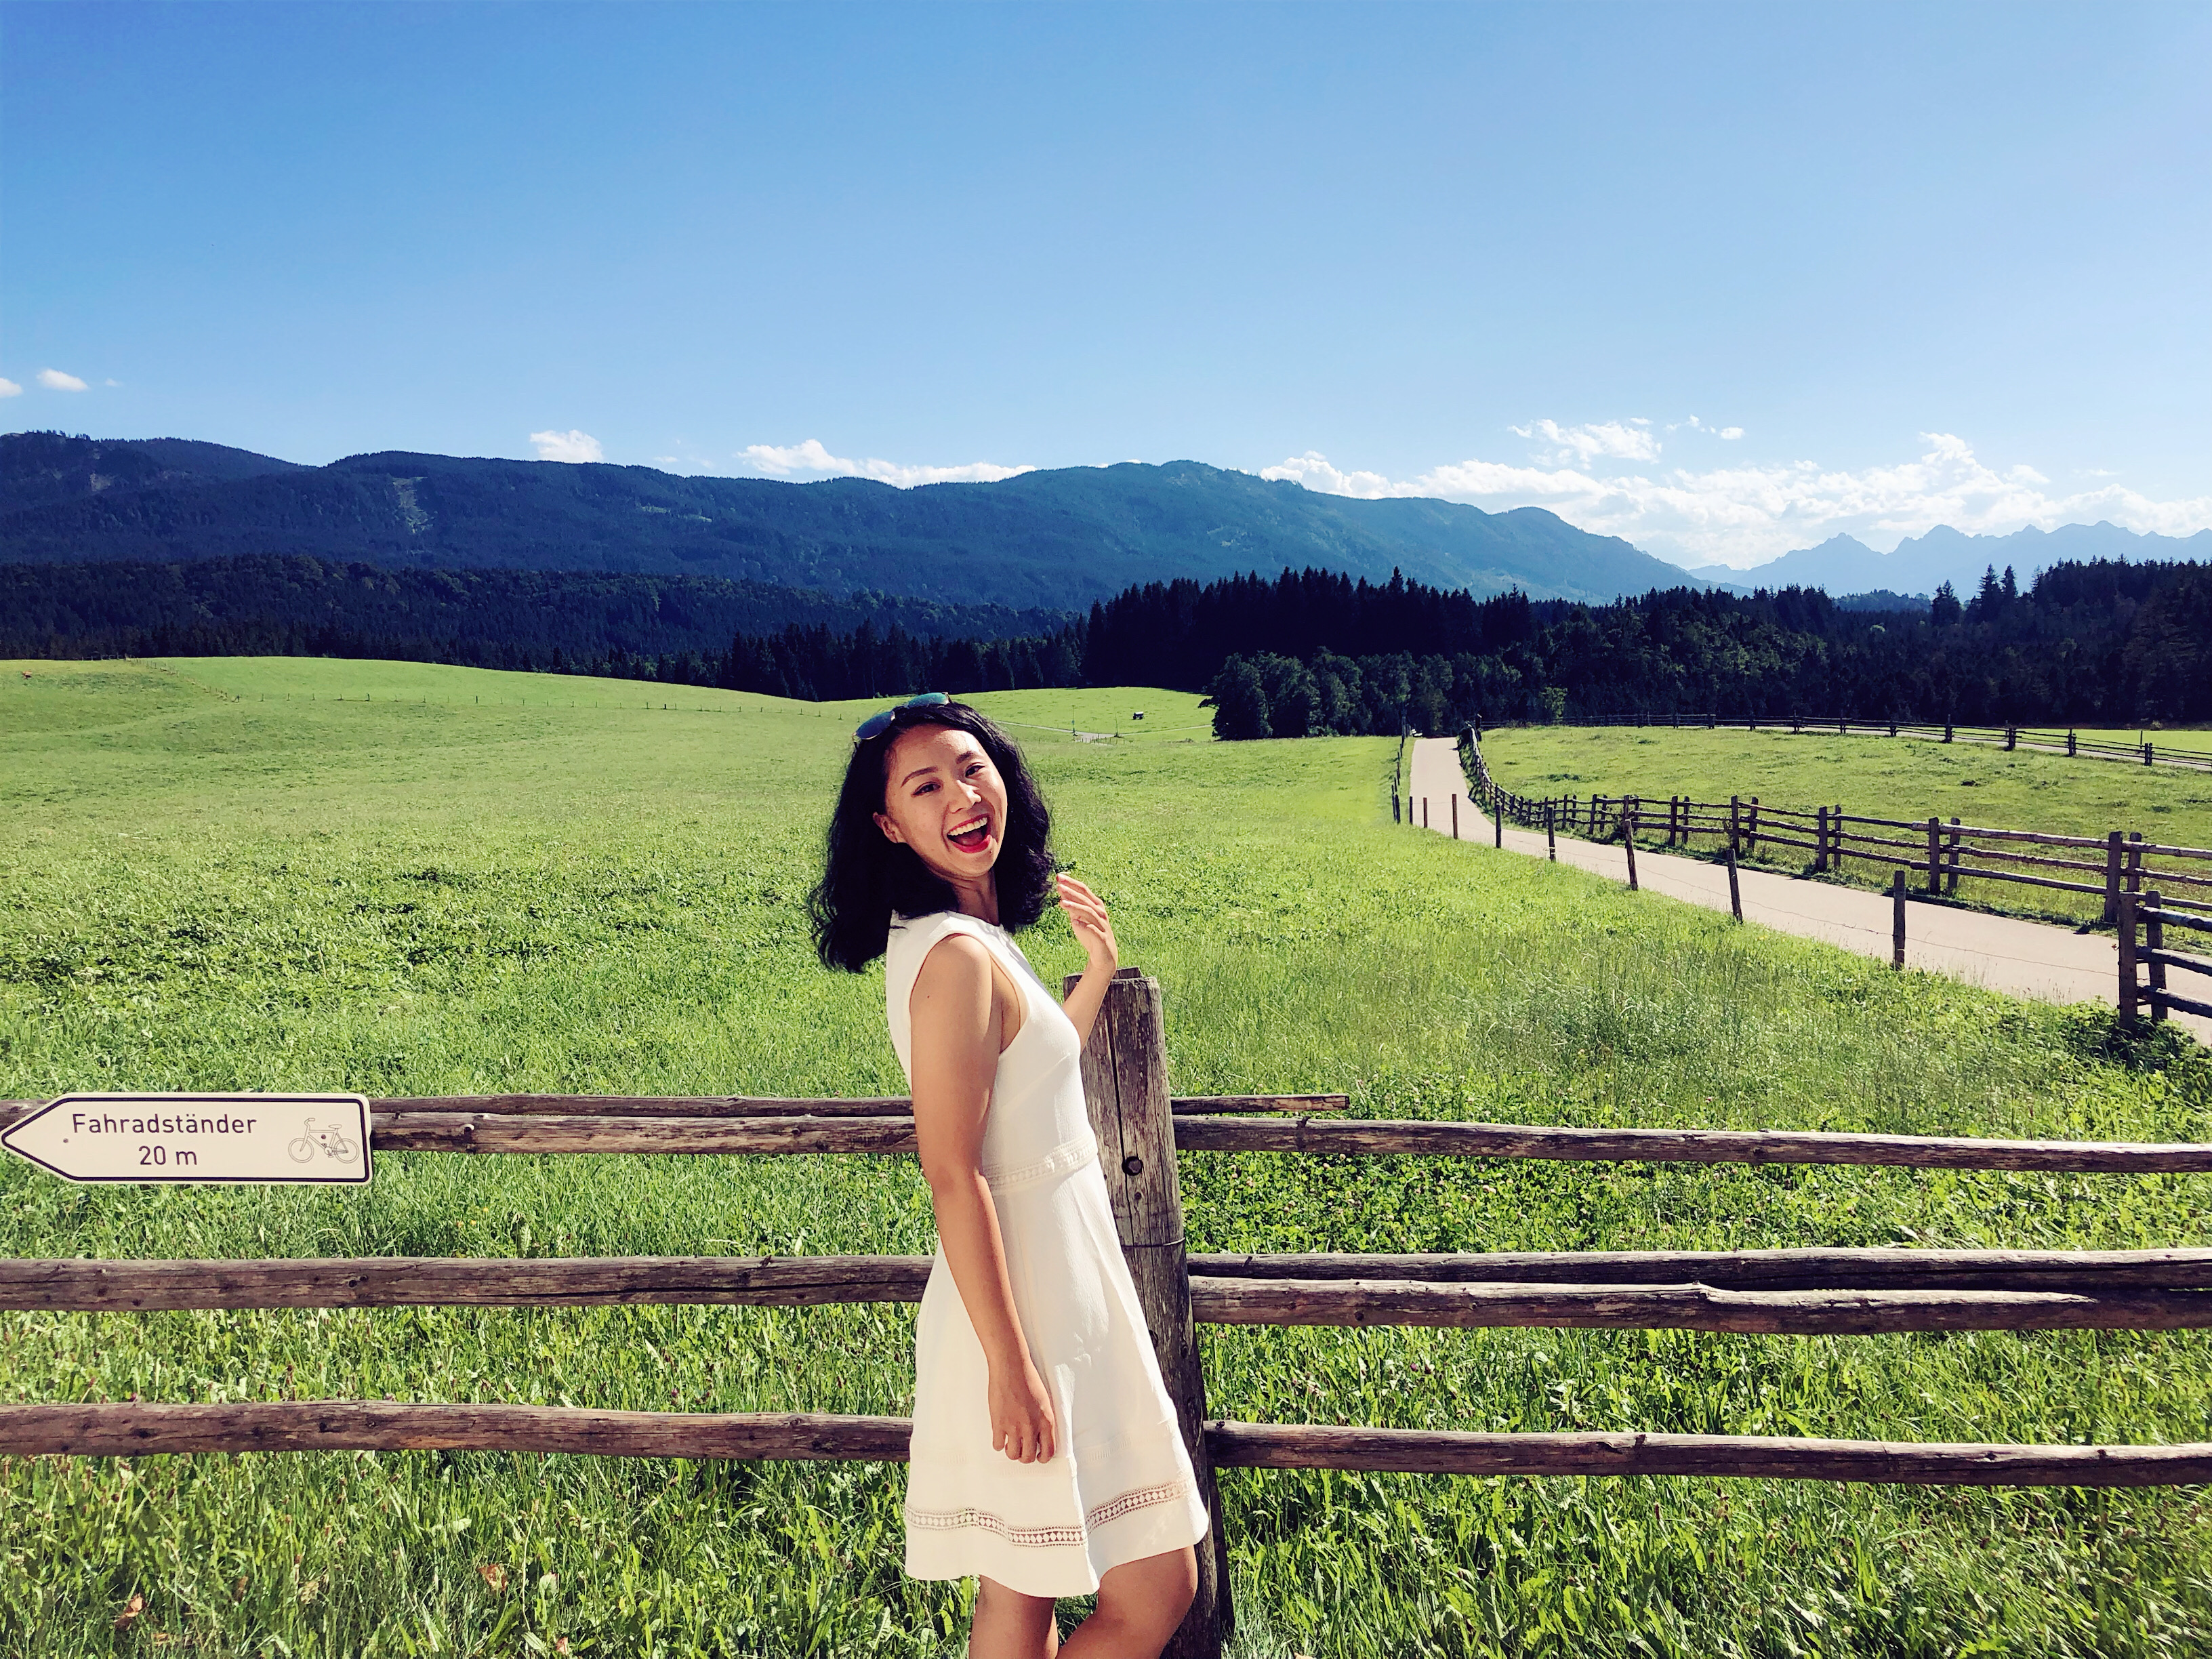 Mandy Han, studying abroad in German, pictured with field in background, Wies, DE